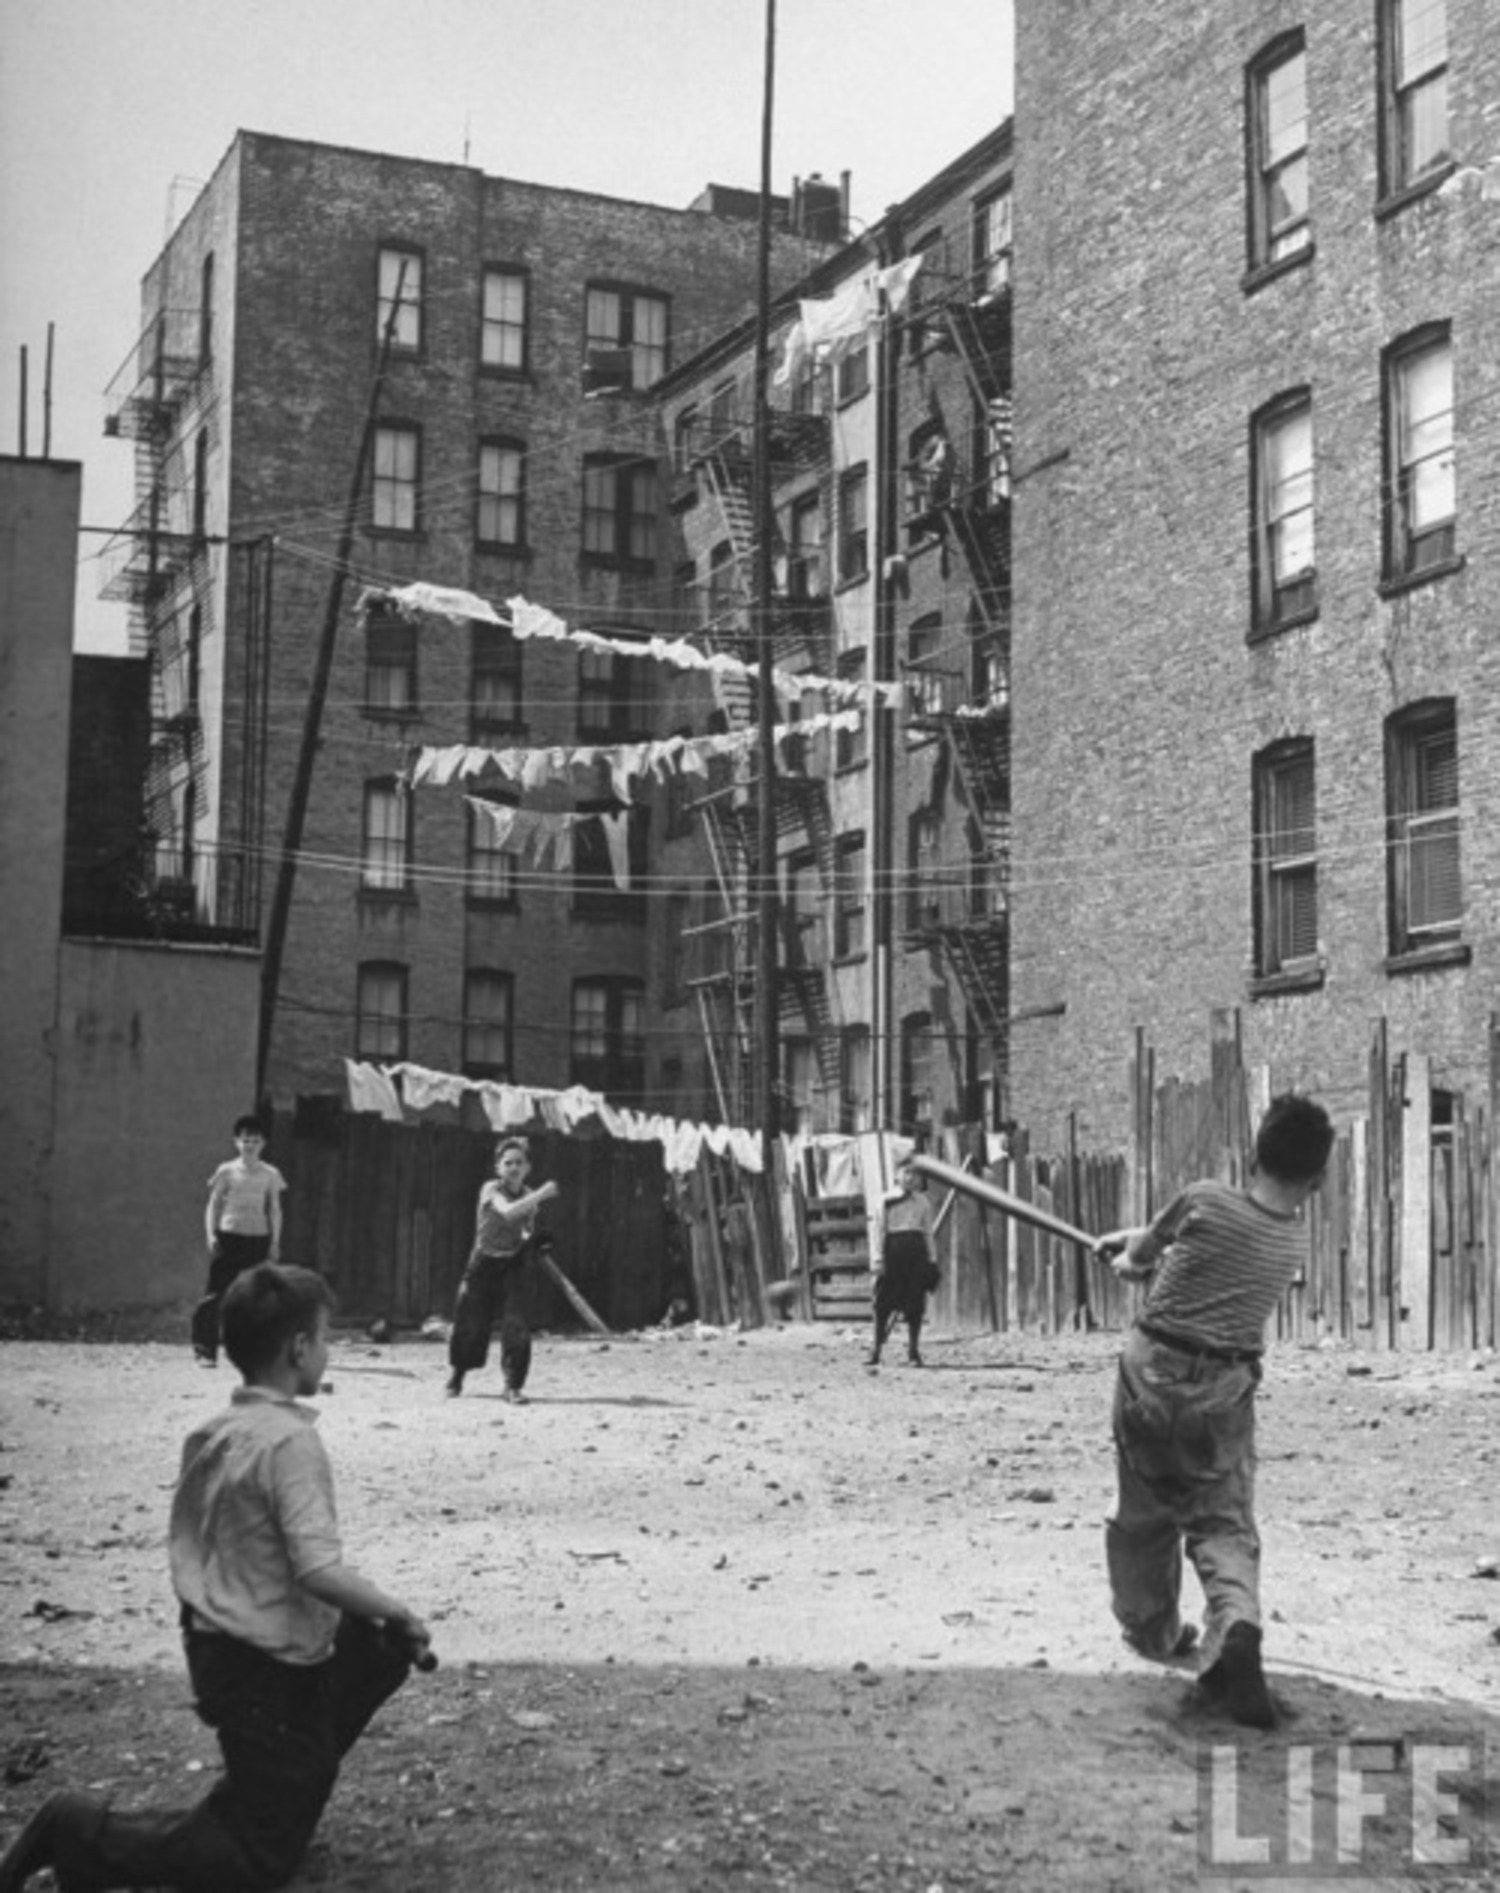 Young boys playing stickball. New York, 1947.